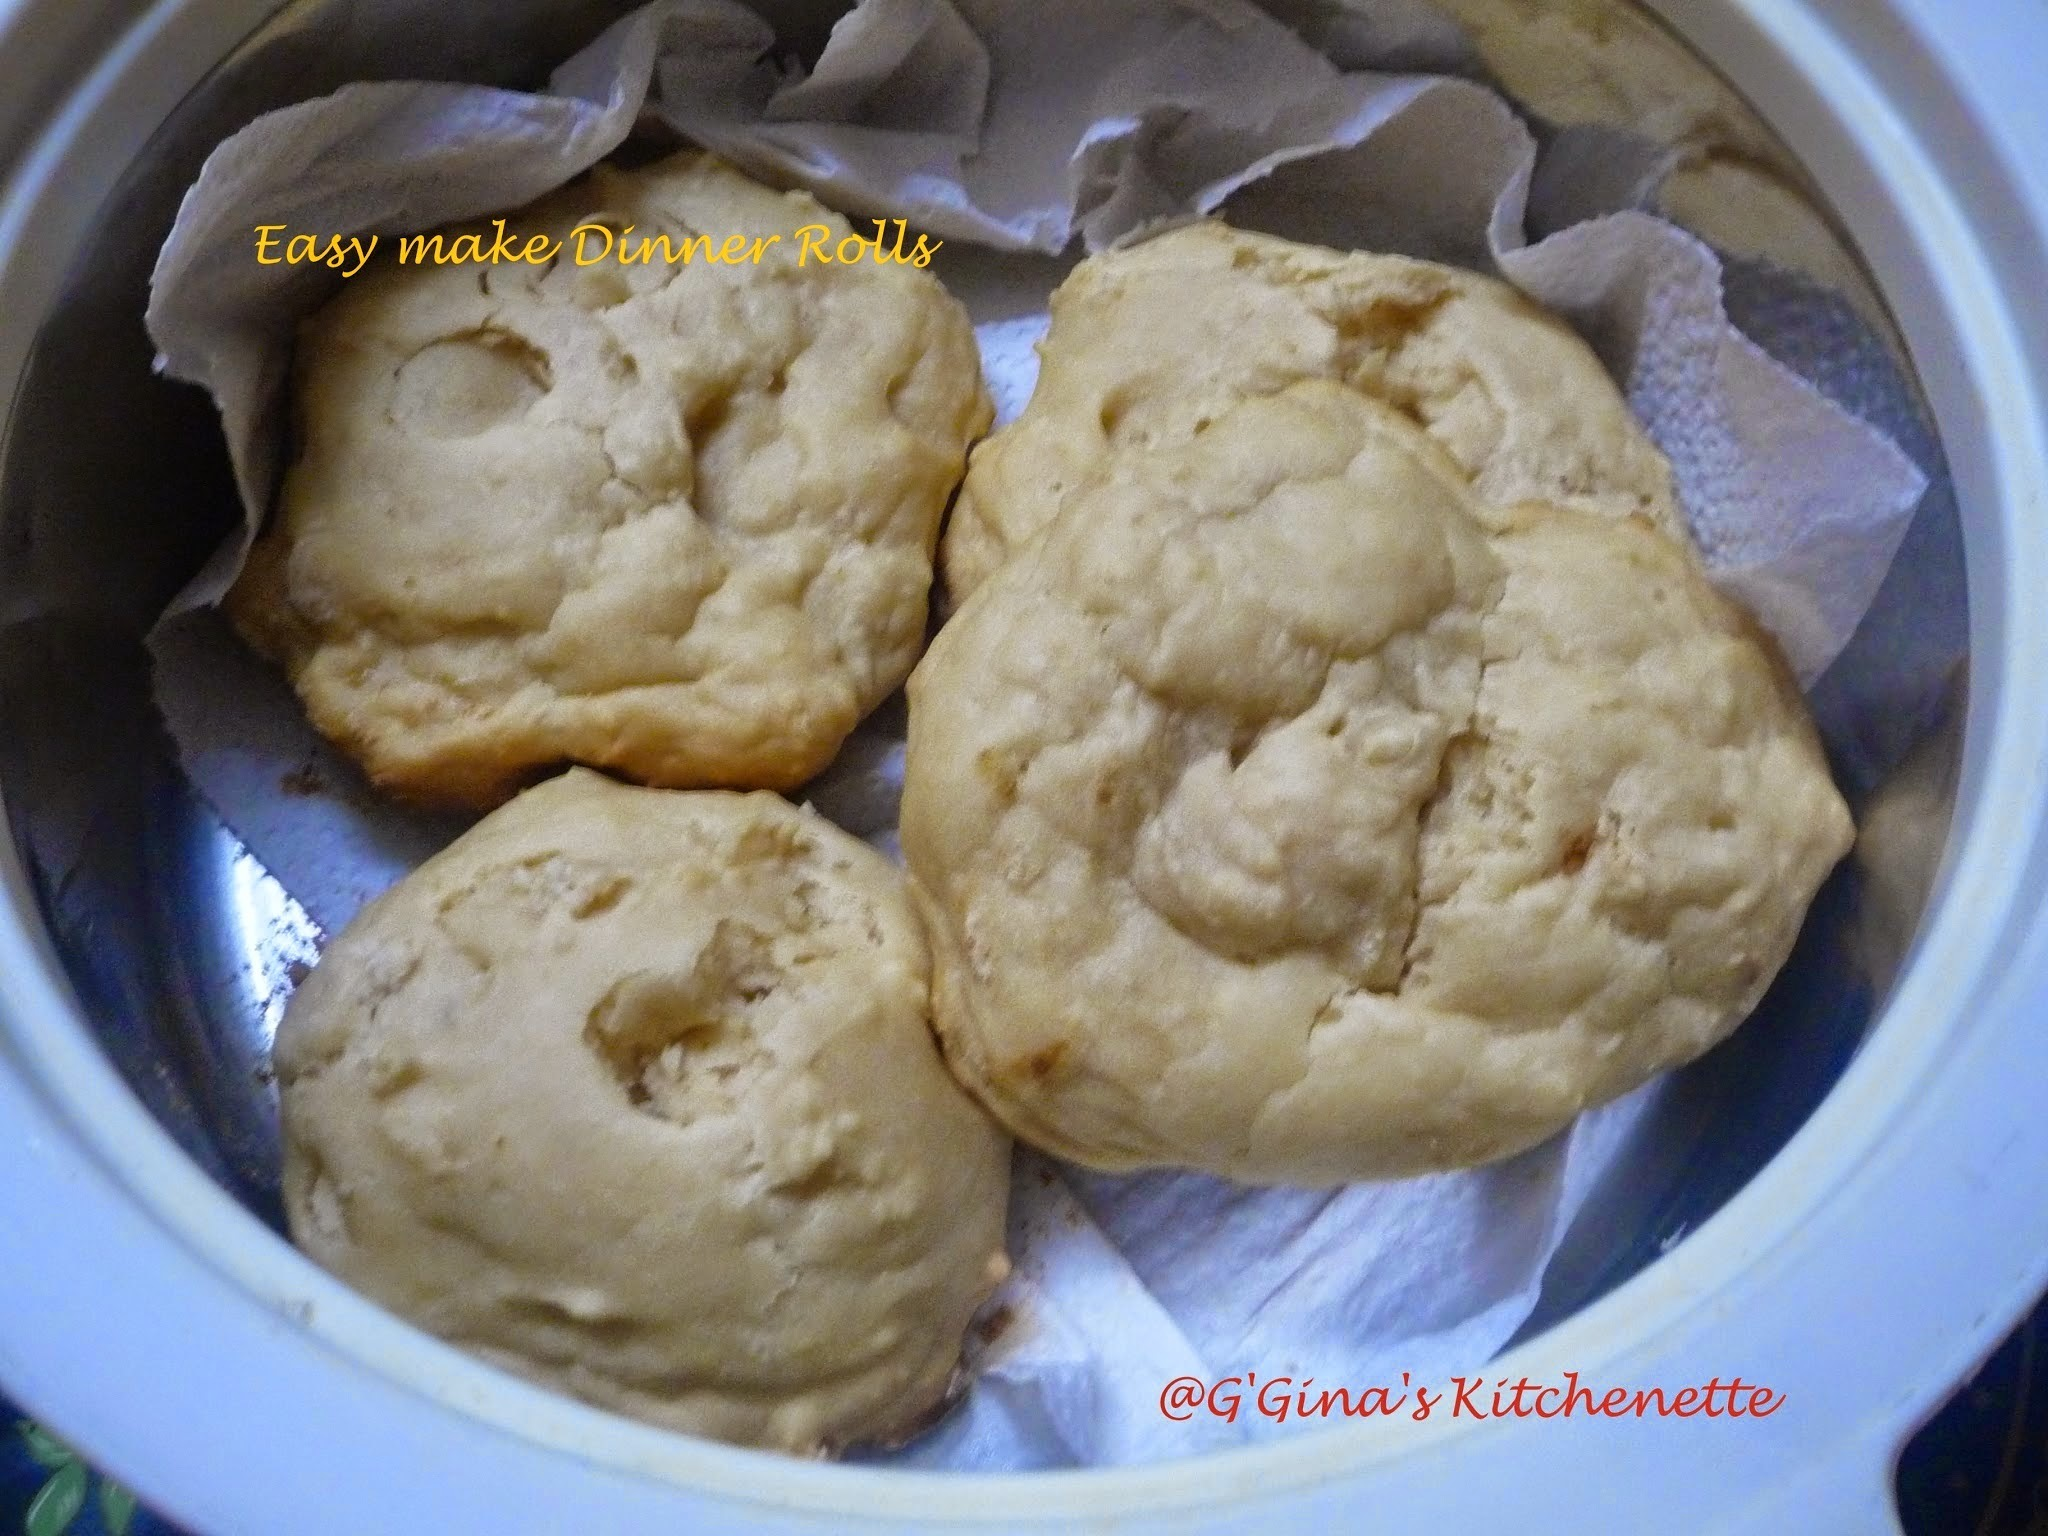 Easy make Dinner bread rolls